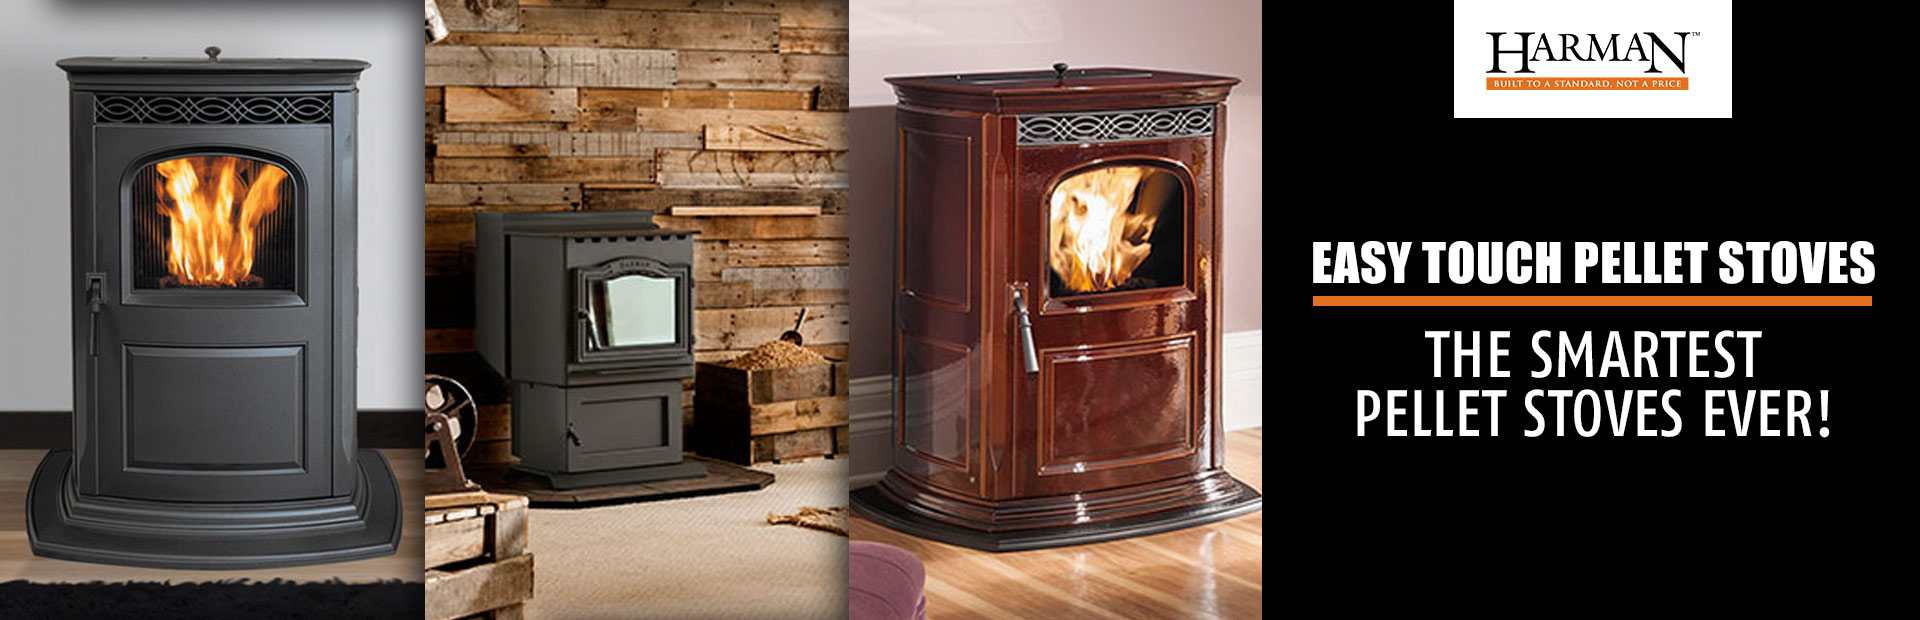 Harman EASY Touch Pellet Stoves: The Smartest Pellet Stoves Ever!